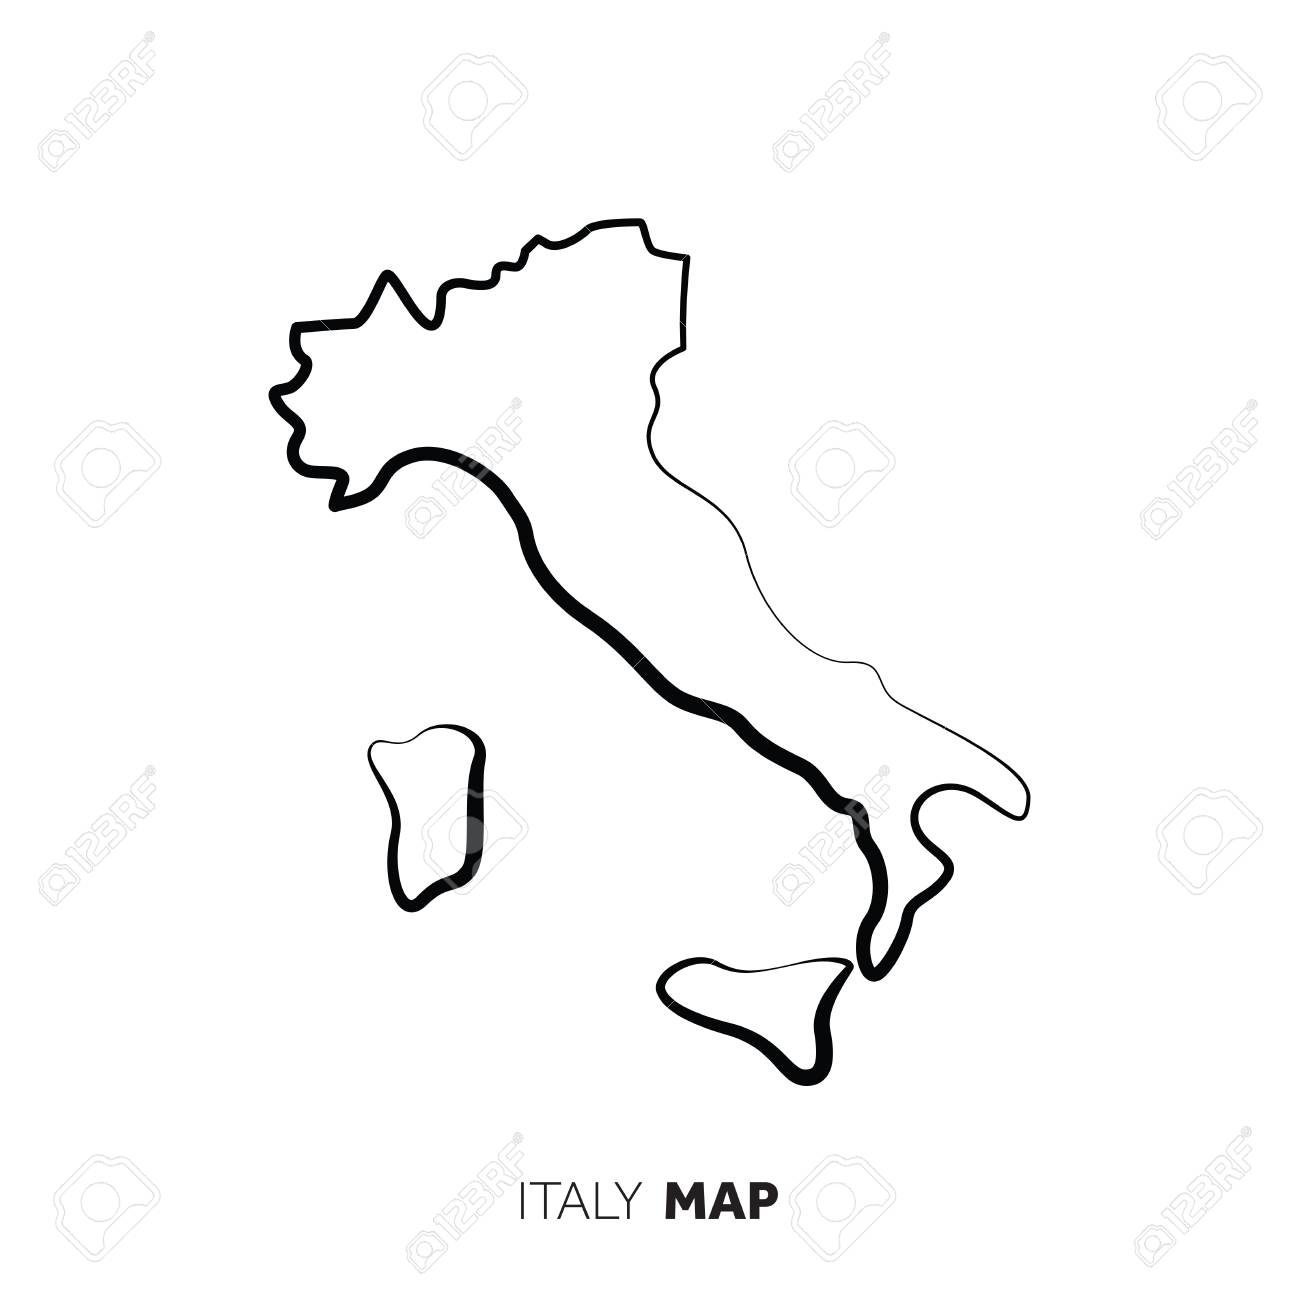 Black And White Map Of Italy.Italy Vector Country Map Outline Black Line On White Background